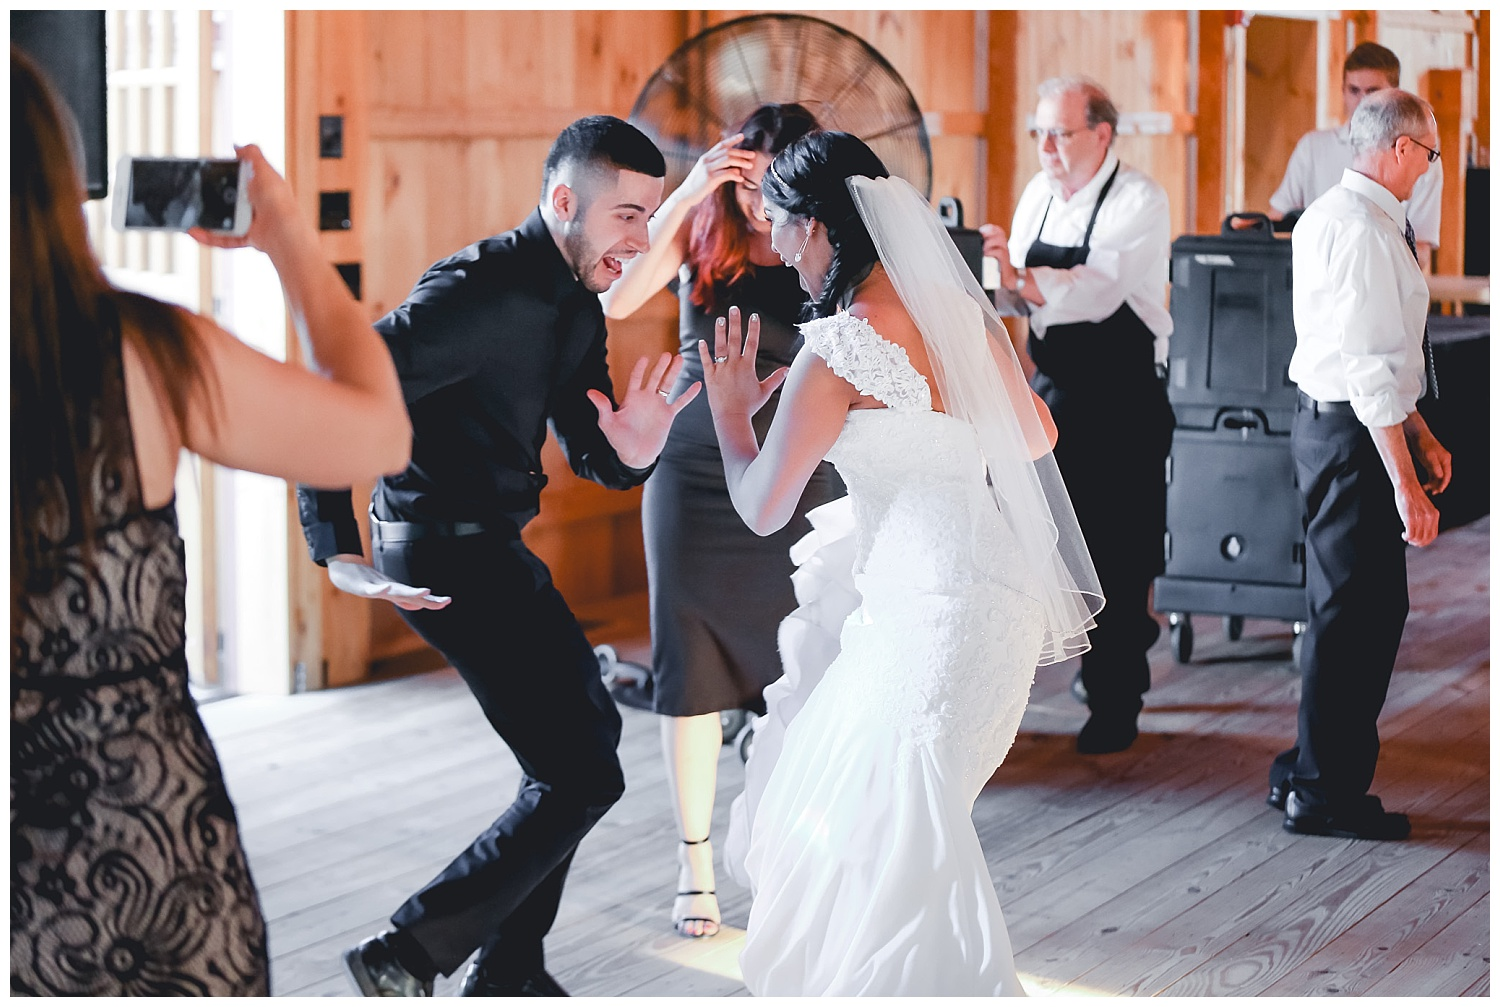 bride and cousin dance at reception